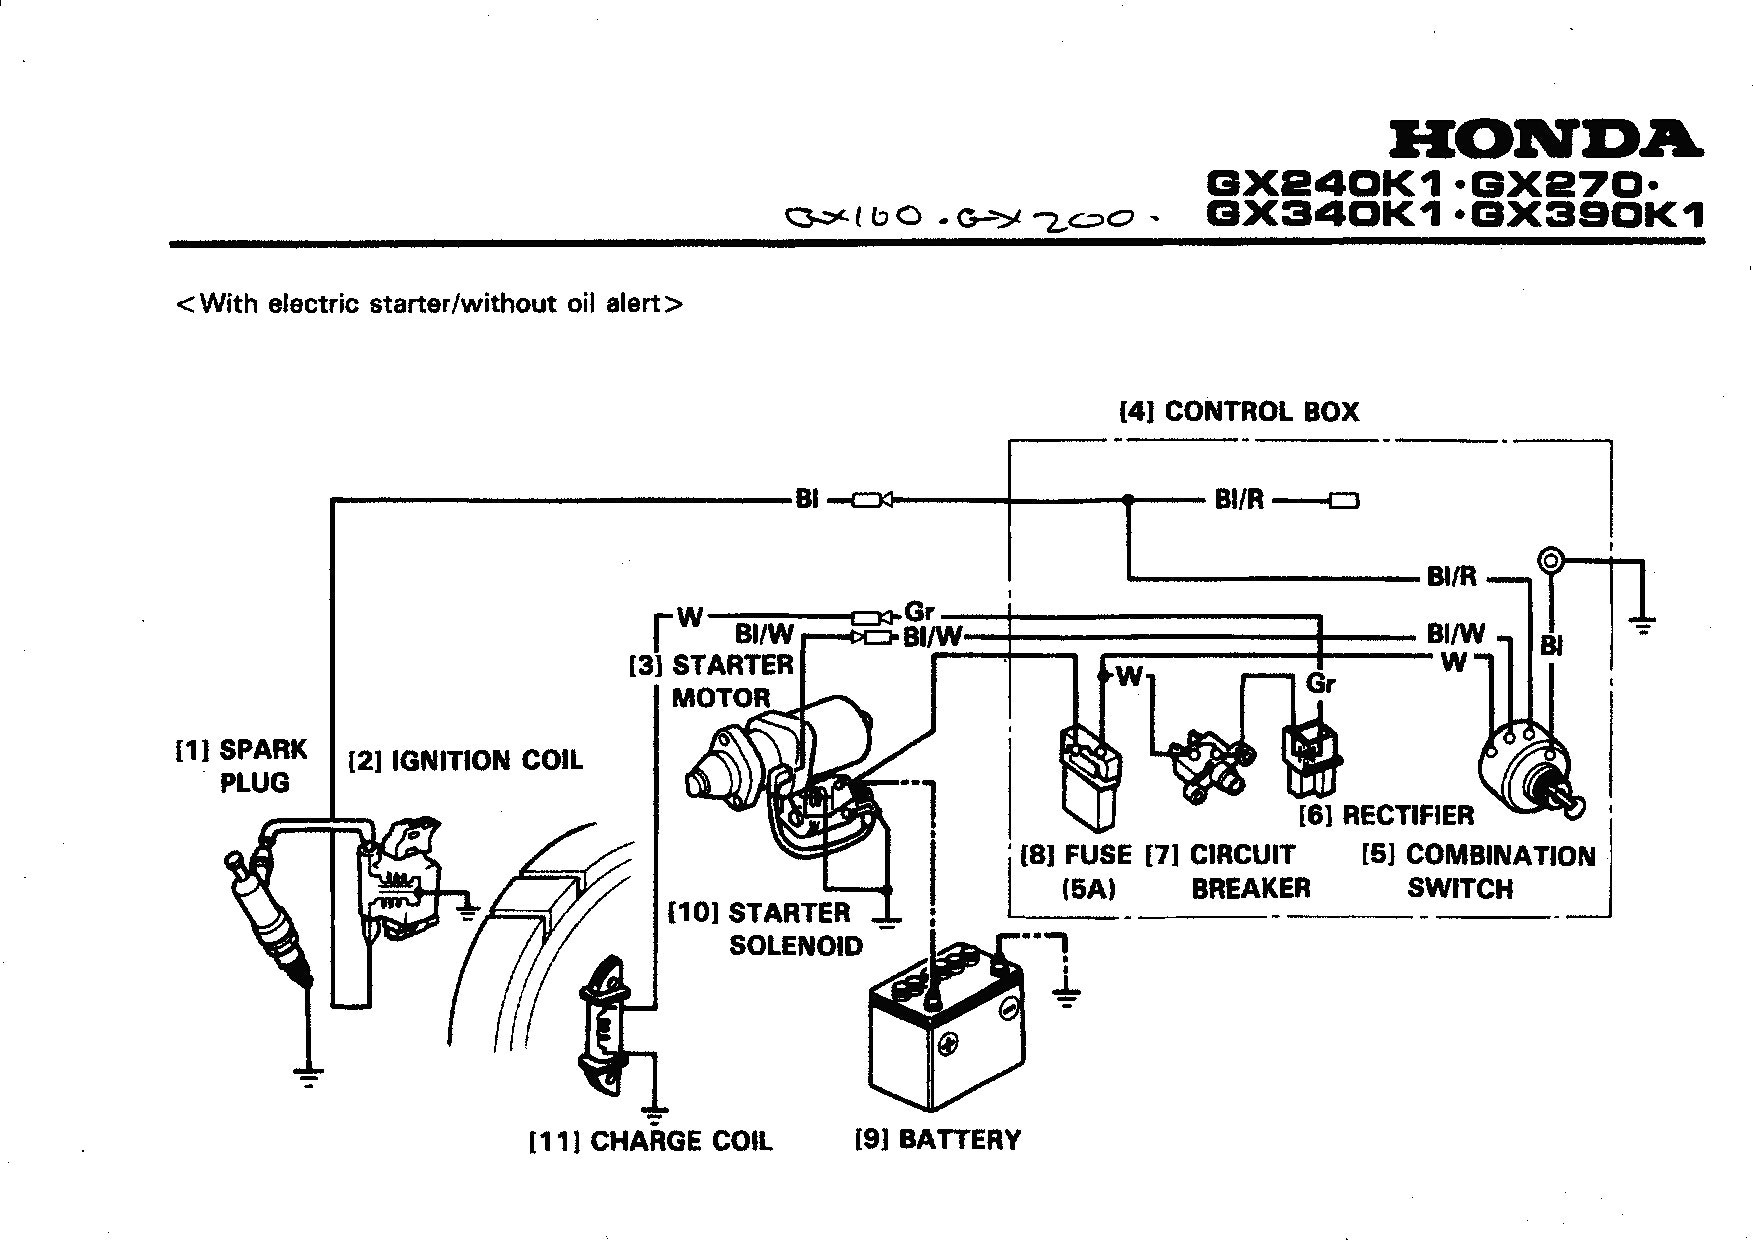 hight resolution of honda gx390 ignition wiring diagram data wiring diagram honda 400ex ignition wiring diagram gx390 wiring diagram